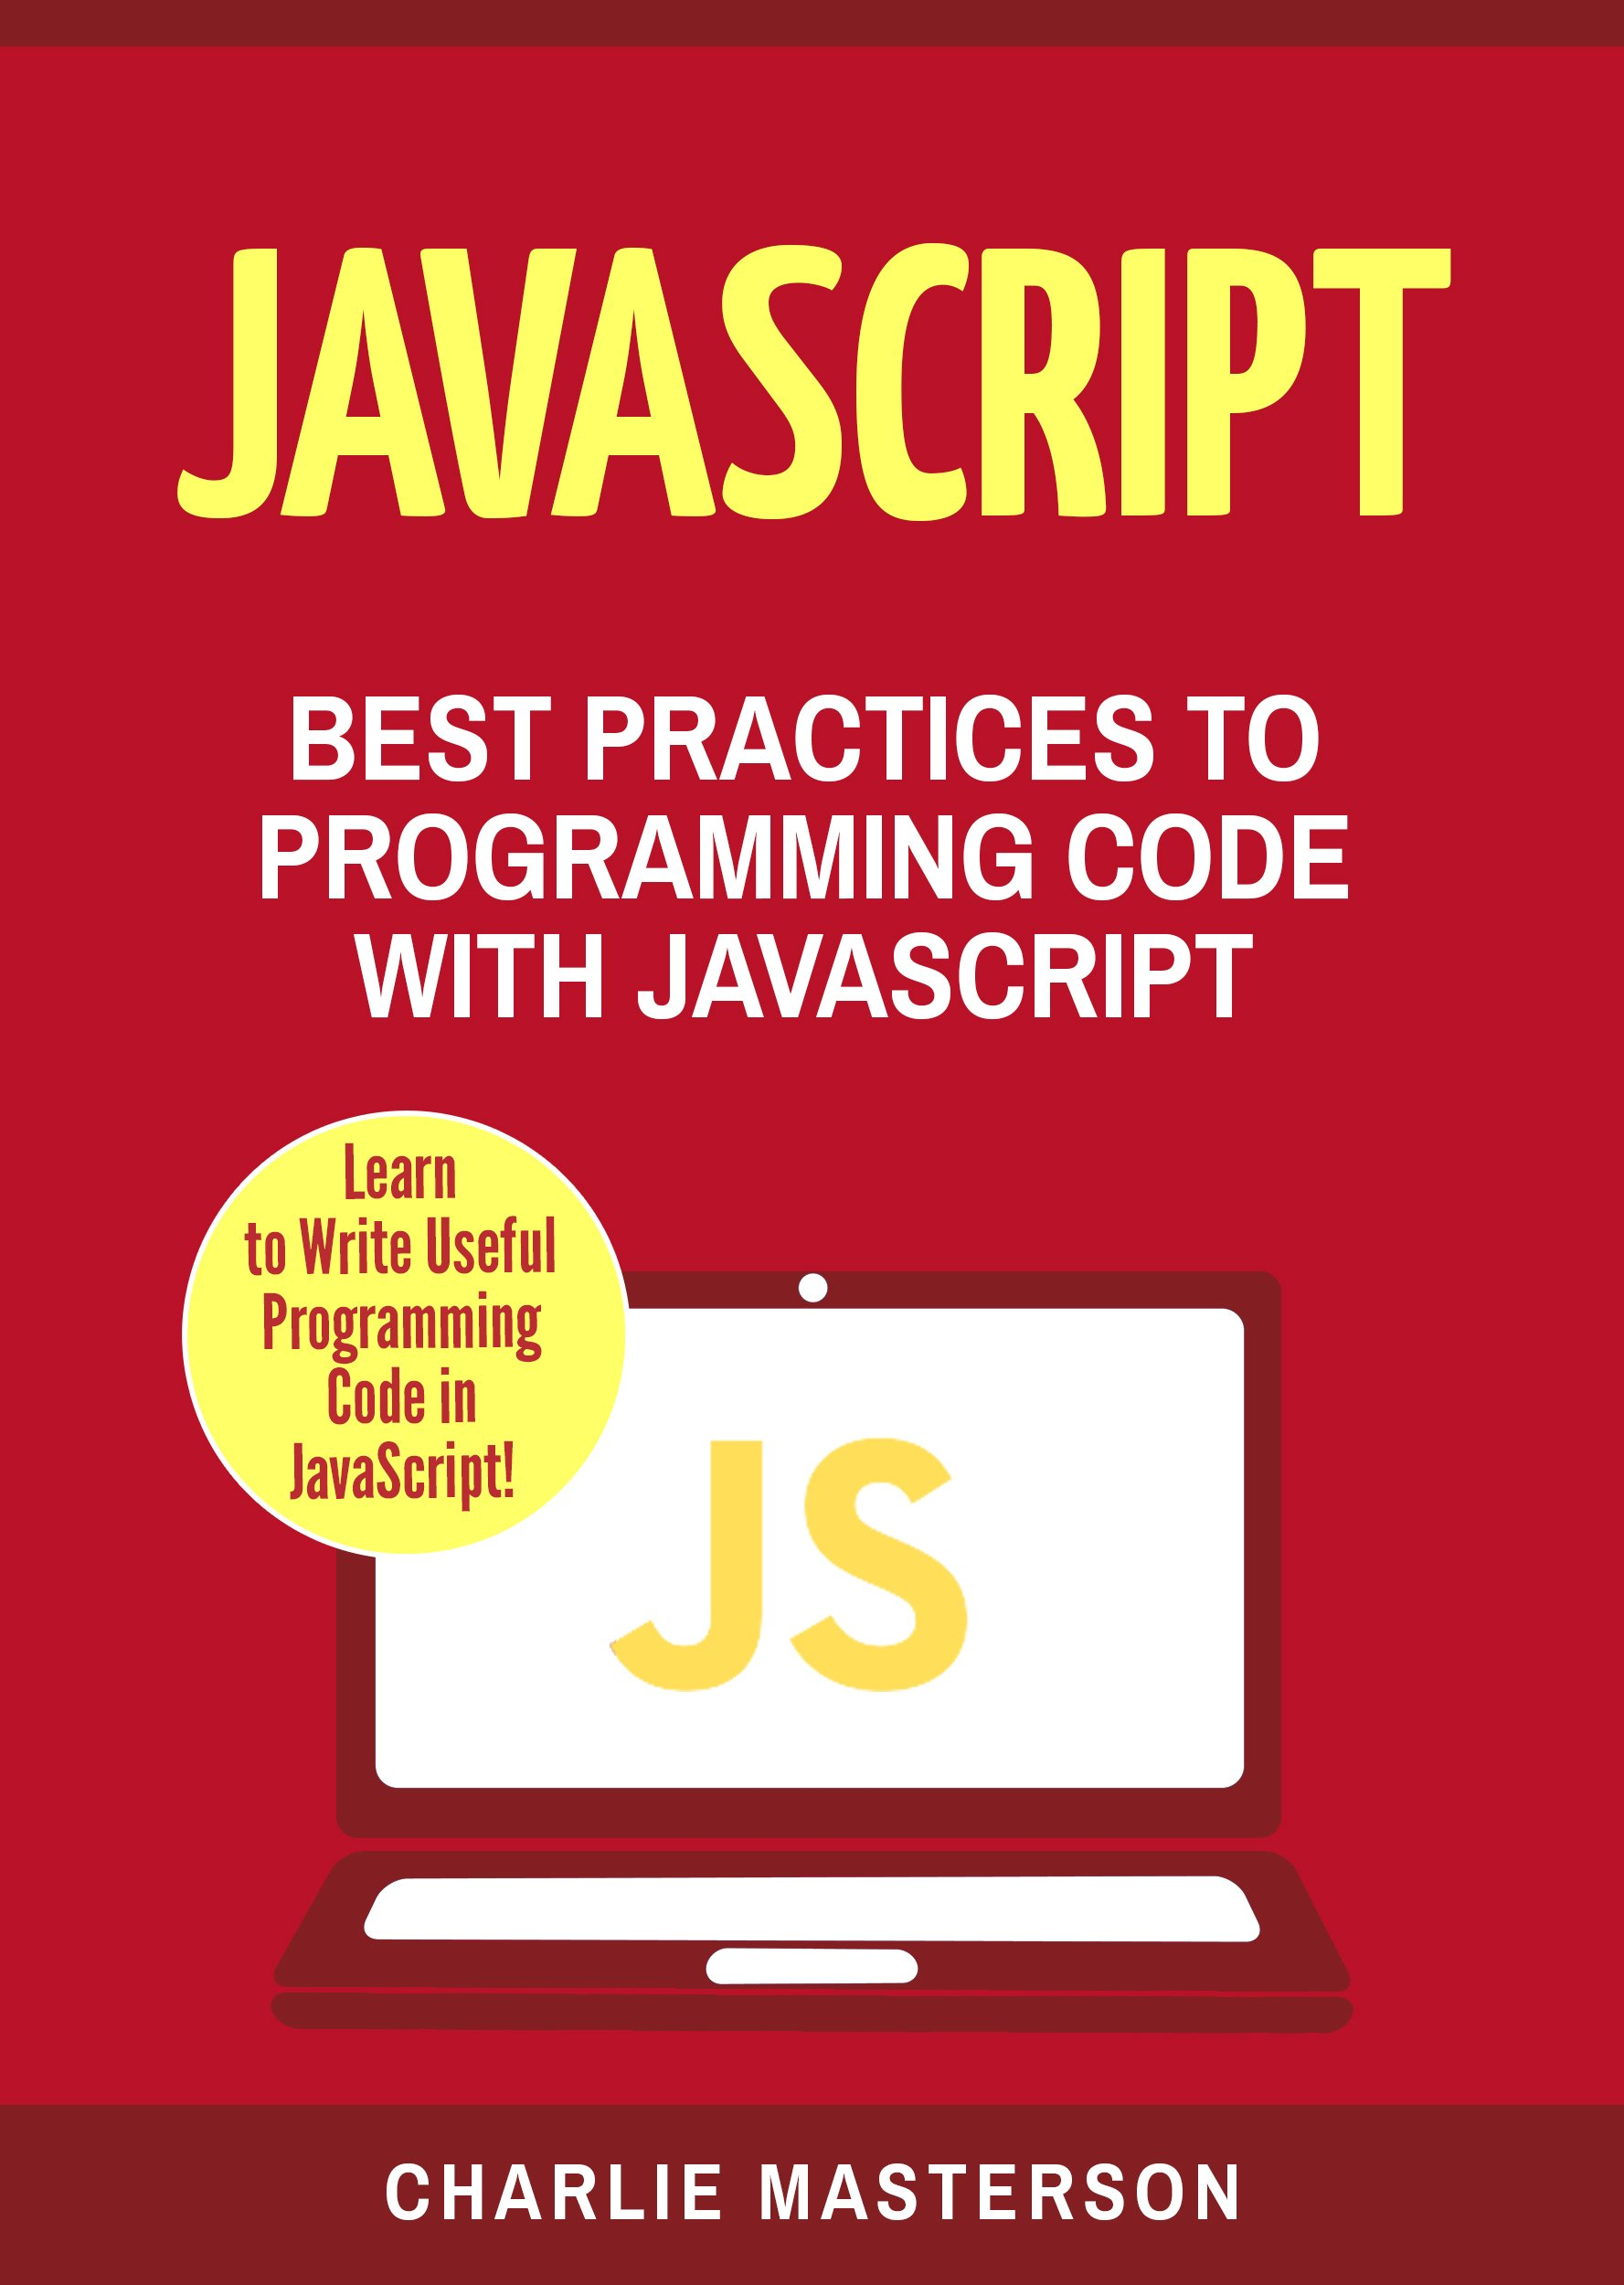 JavaScript: Best Practices to Programming Code with JavaScript